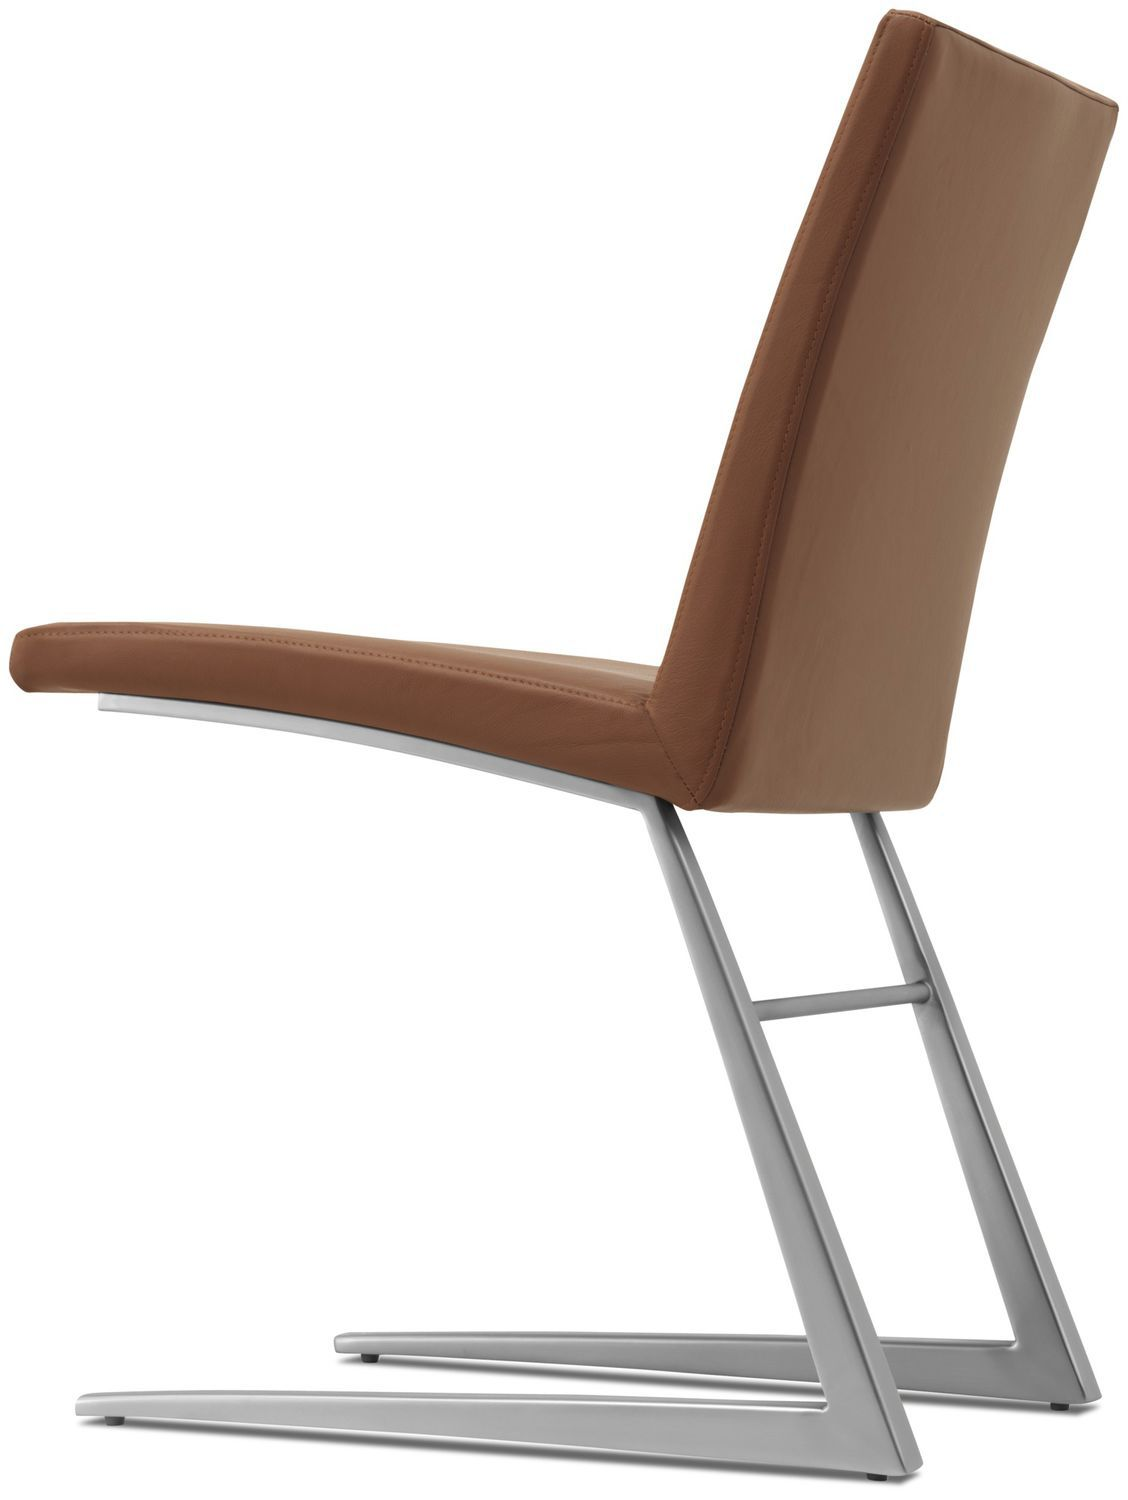 Miraculous Contemporary Chair Cantilever Fabric Leather Caraccident5 Cool Chair Designs And Ideas Caraccident5Info